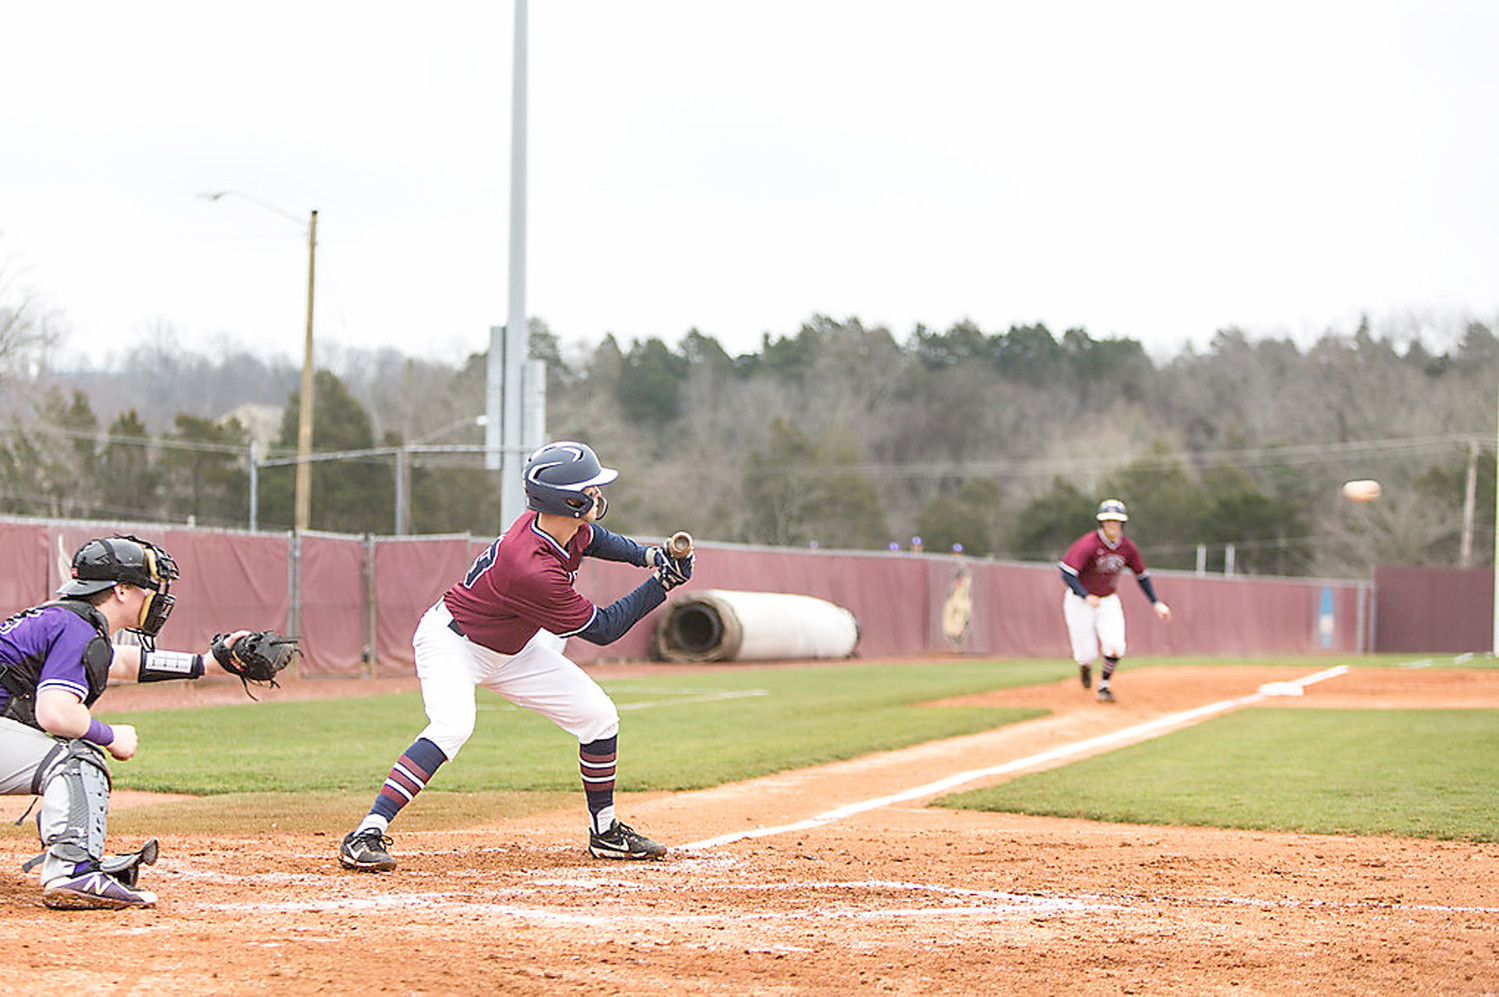 FLAMES junior Brayden Ware prepares to execute a squeeze bunt in Tuesday's game. The runner scored on the successful bunt.